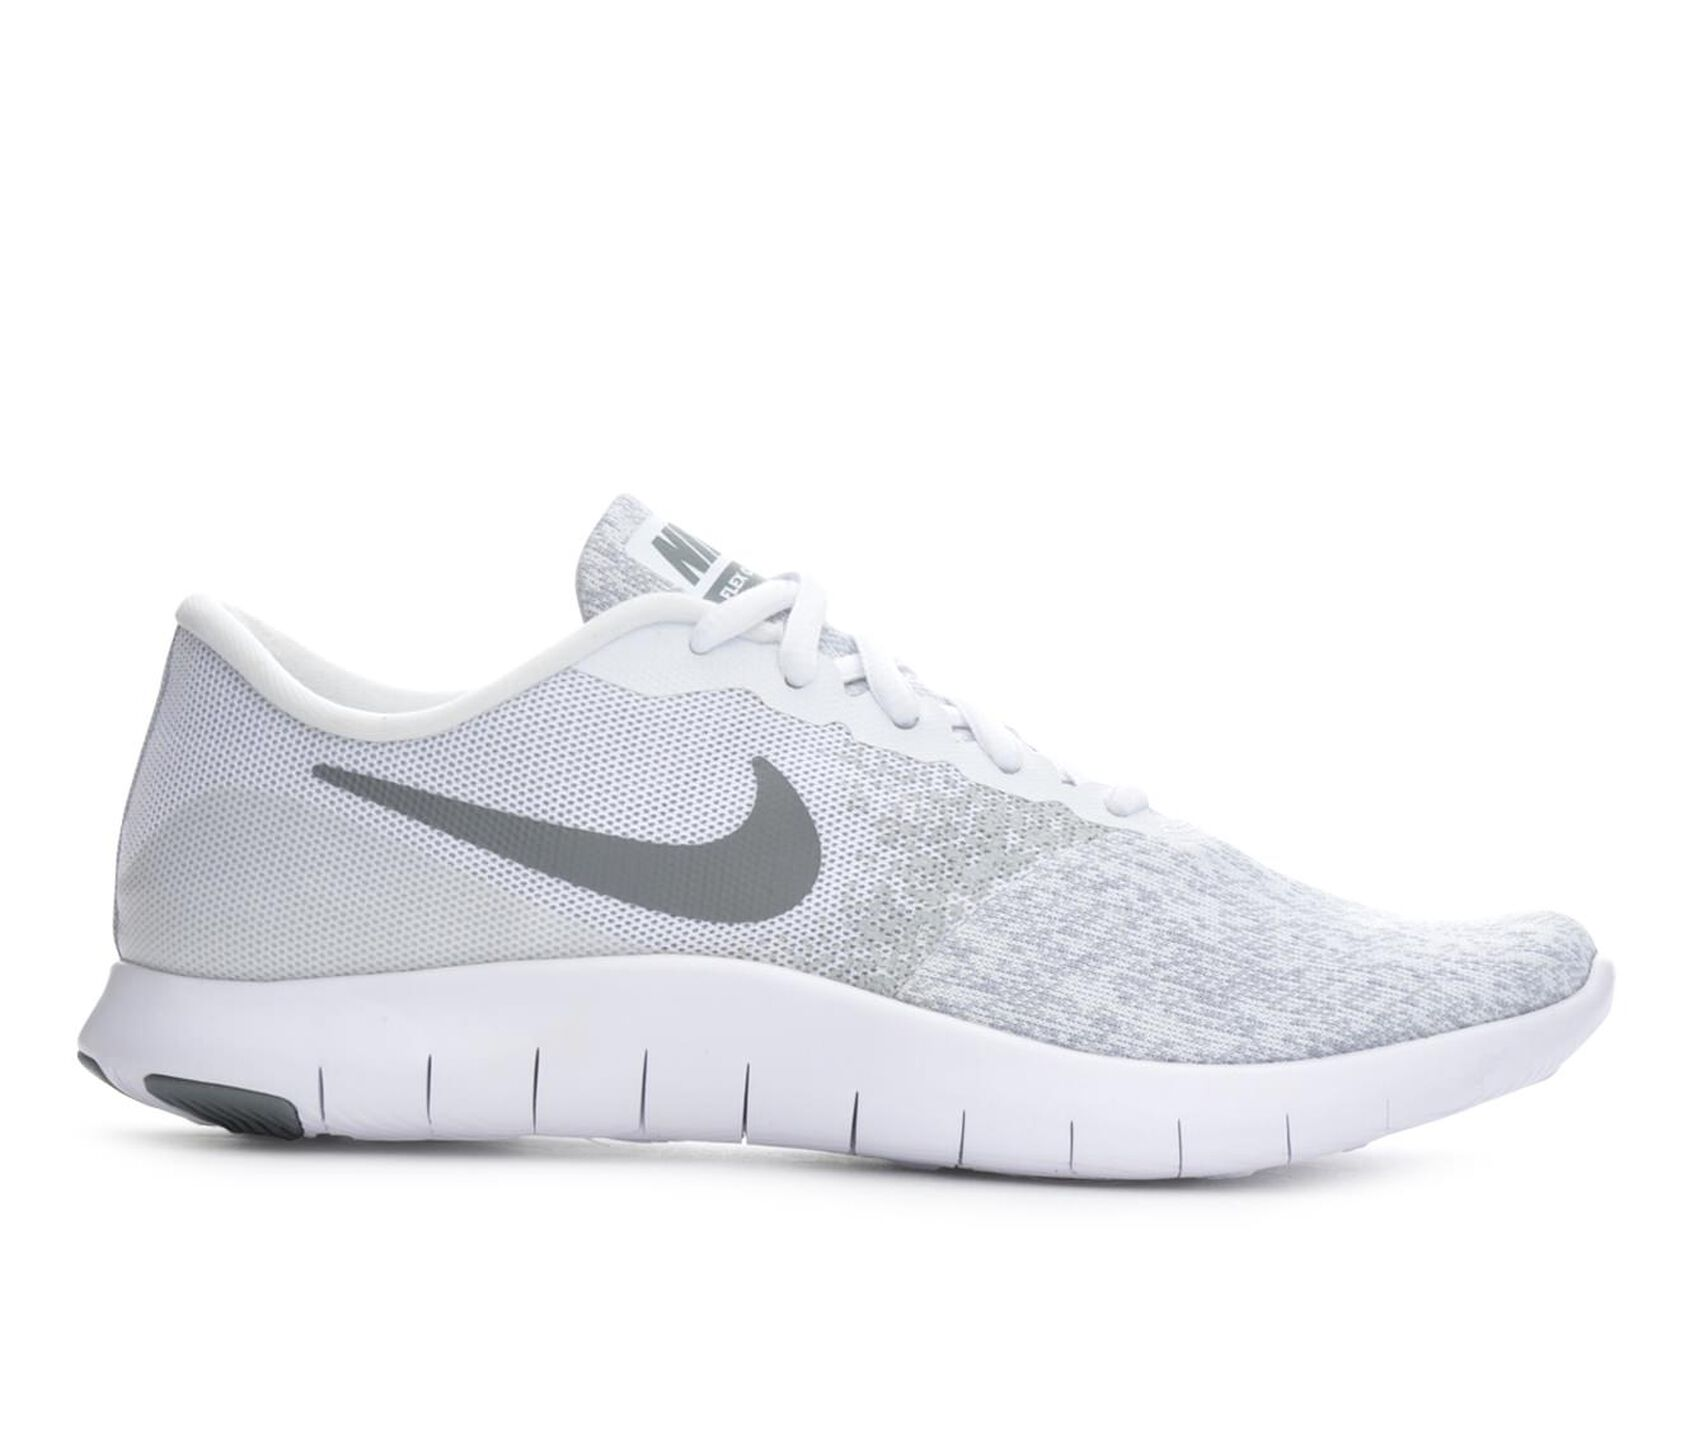 Luxury New* Womenu0026#39;s Nike T-Lite VIII Leather Running Shoes Size 5 - 12 M - White | EBay